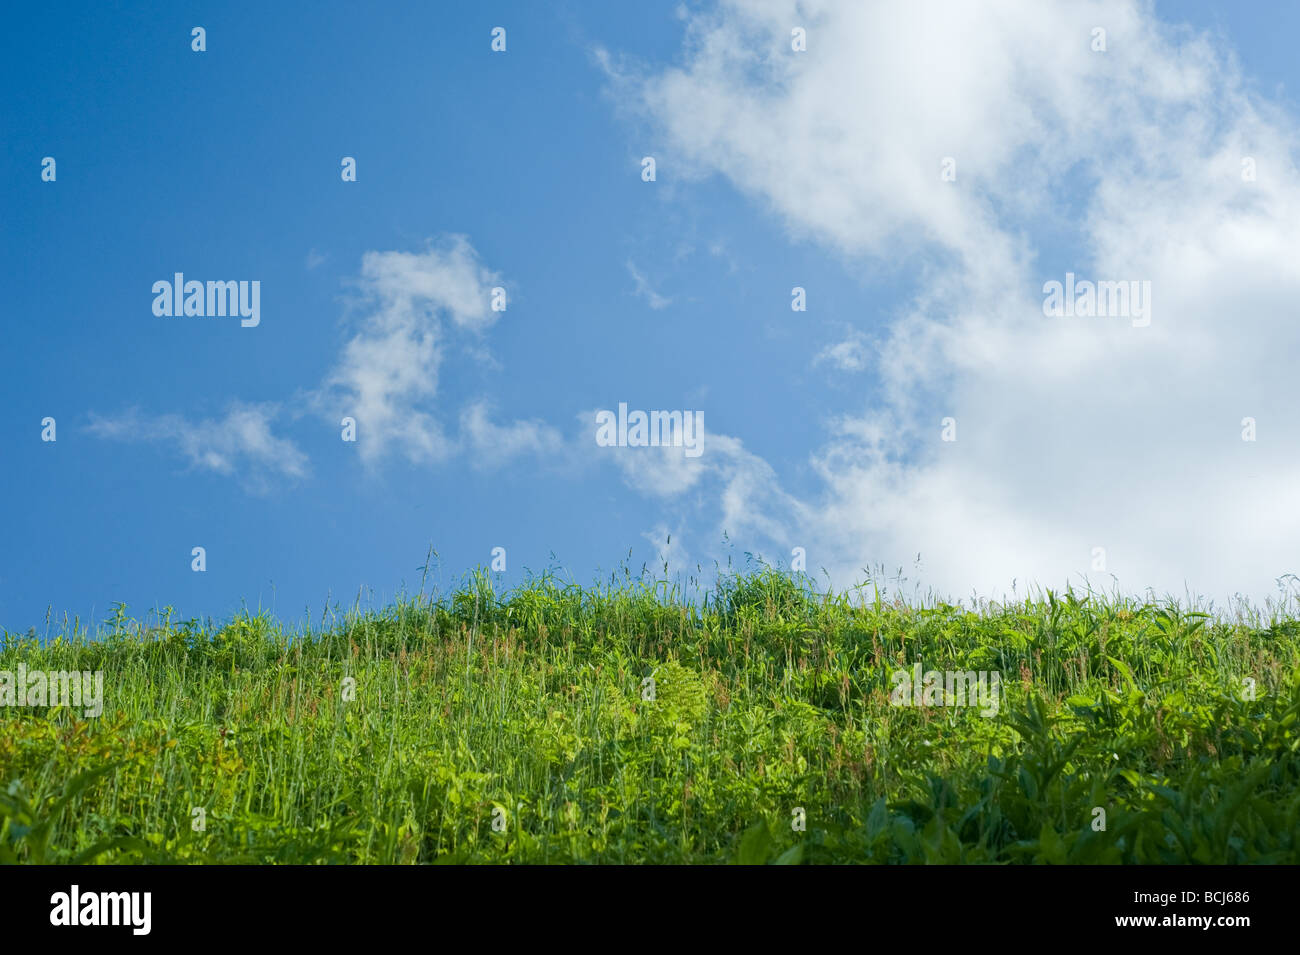 beutiful meadow reaching to the sky with white clouds and blue skies - Stock Image